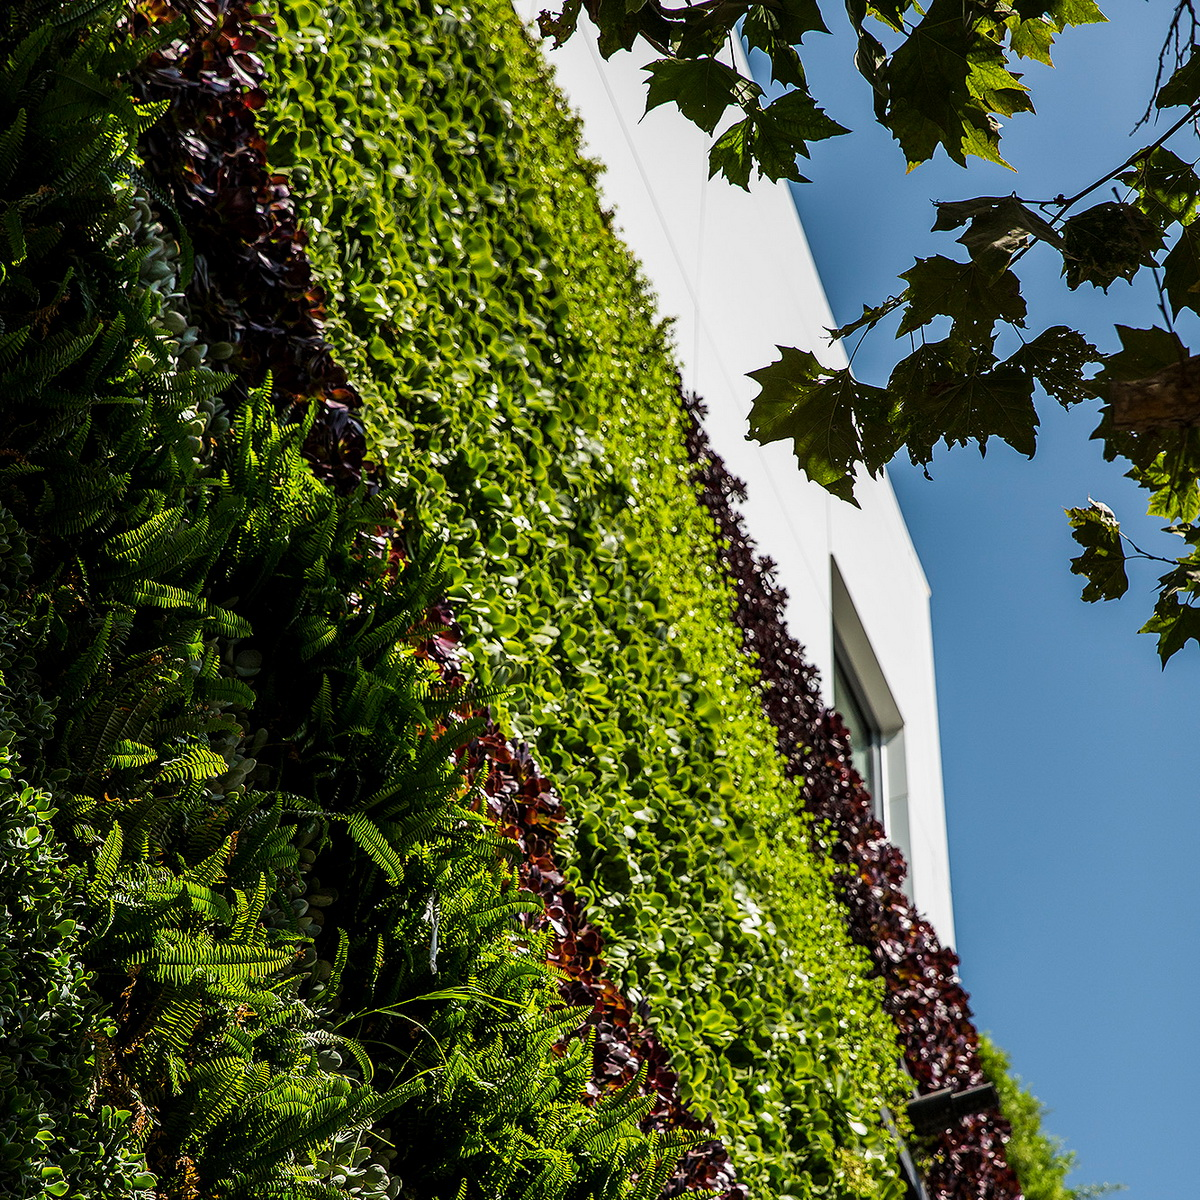 e1 _MAD_Gardenhouse_Green Wall_photo by Manolo Langis_调整大小.jpg